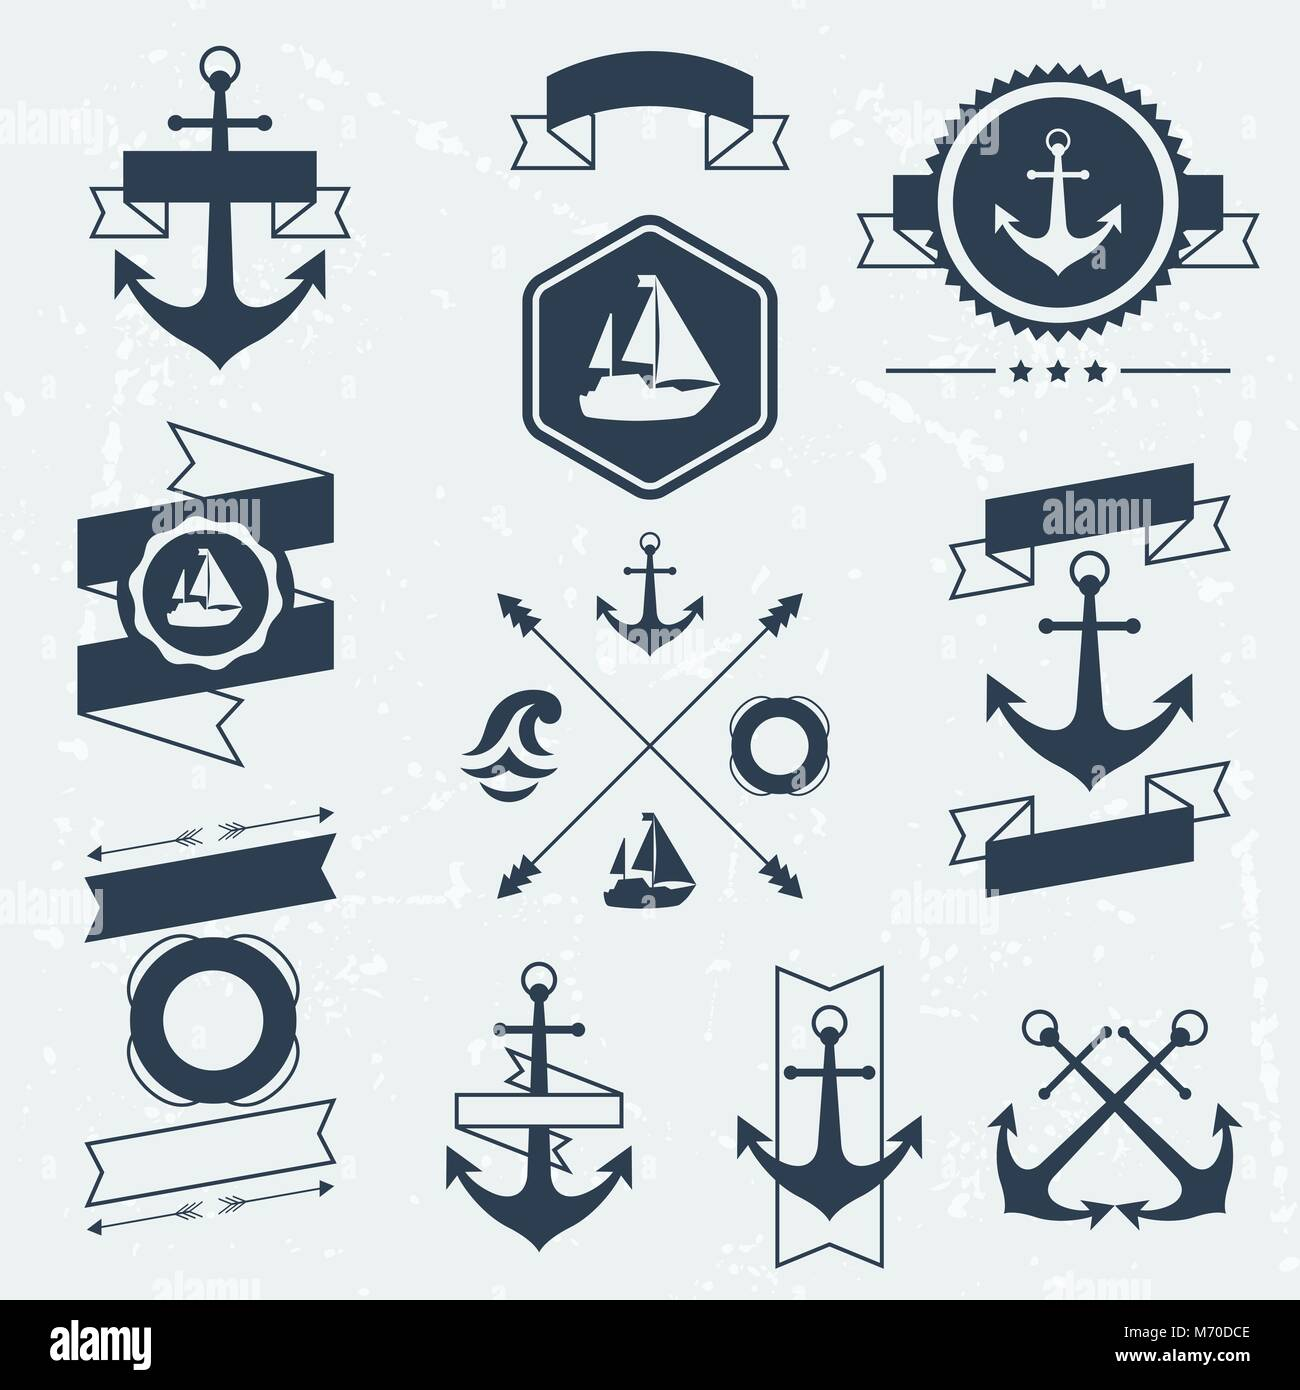 Collection of nautical symbols icons badges and elements - Stock Vector